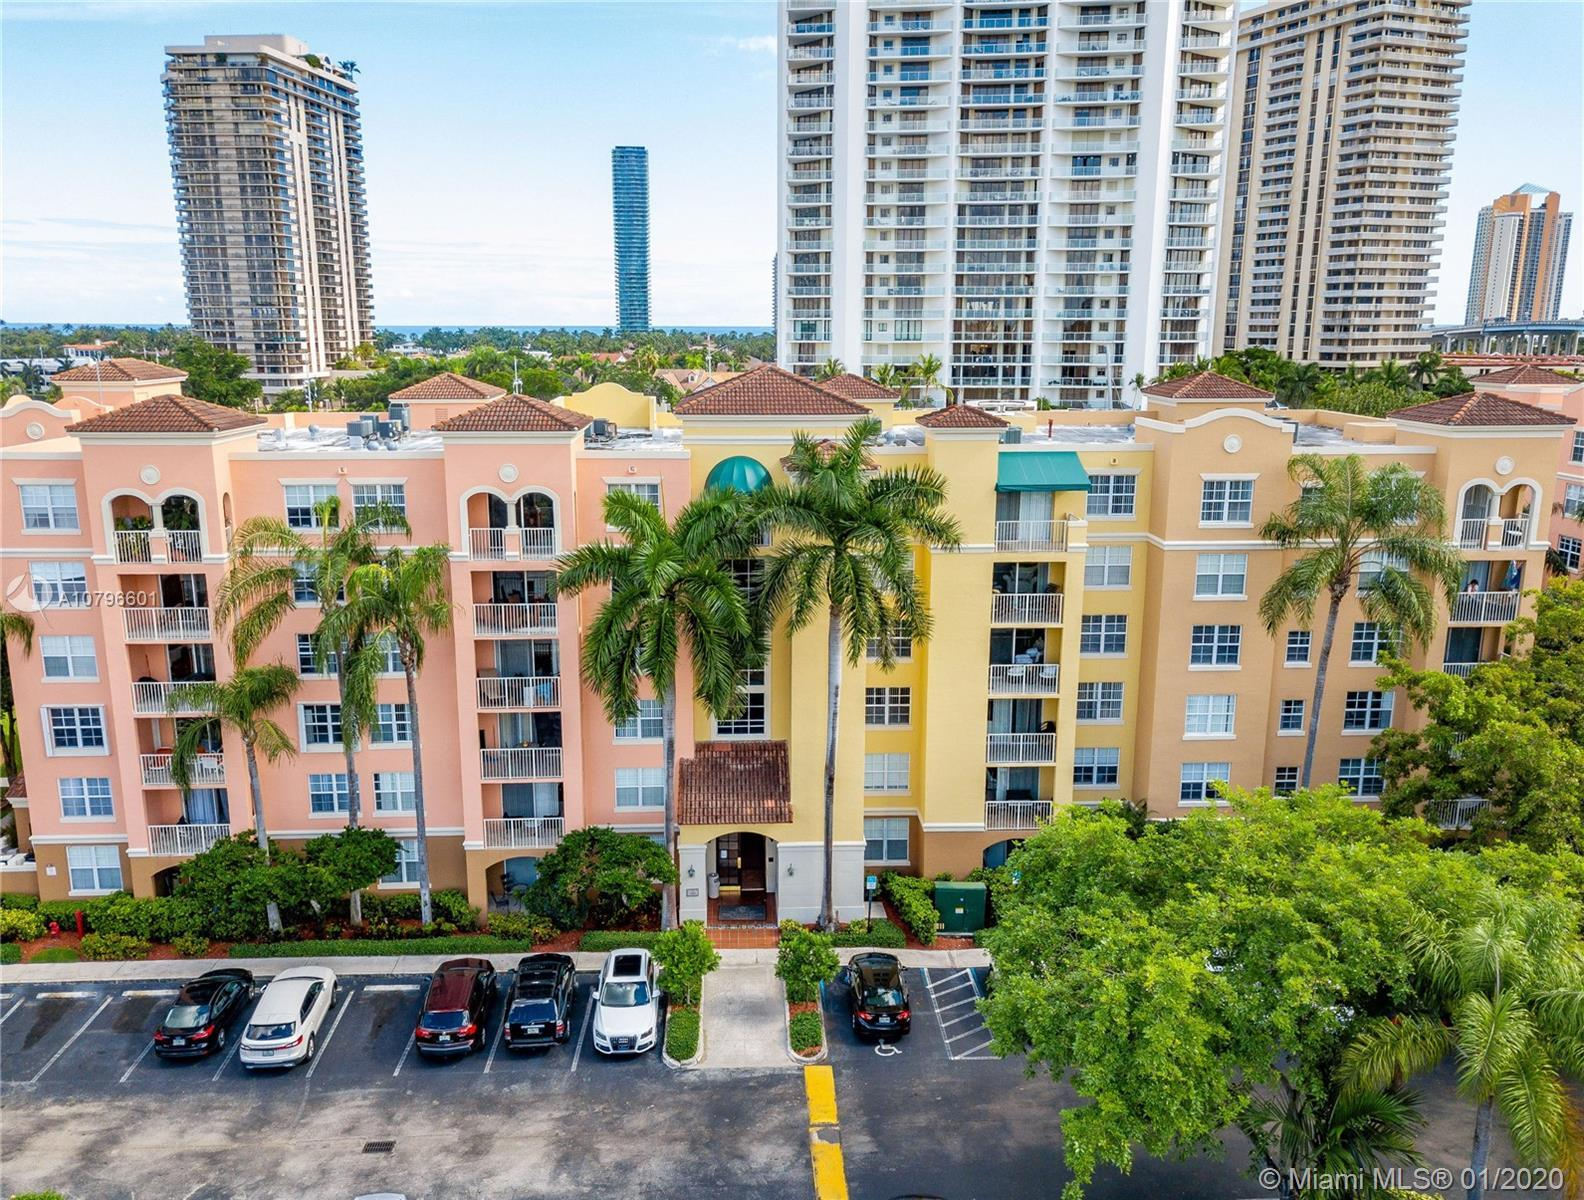 Beautiful 2 bedrooms 2 bathrooms whit great views of the water and Marina.Apartment was recently rep